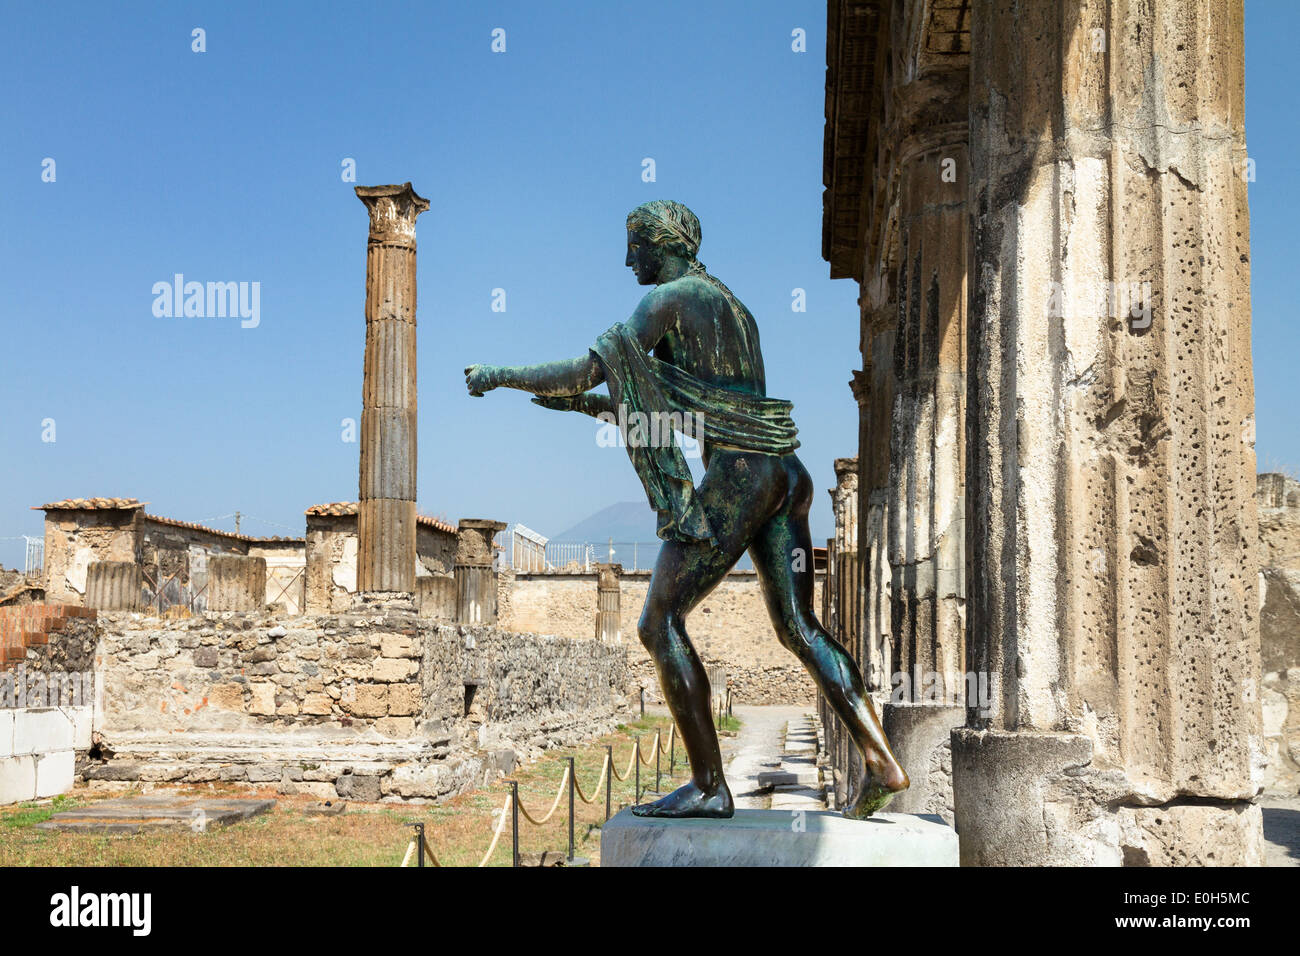 Temple of Apollo, historic town of Pompeii in the Gulf of Naples, Campania, Italy, Europe - Stock Image